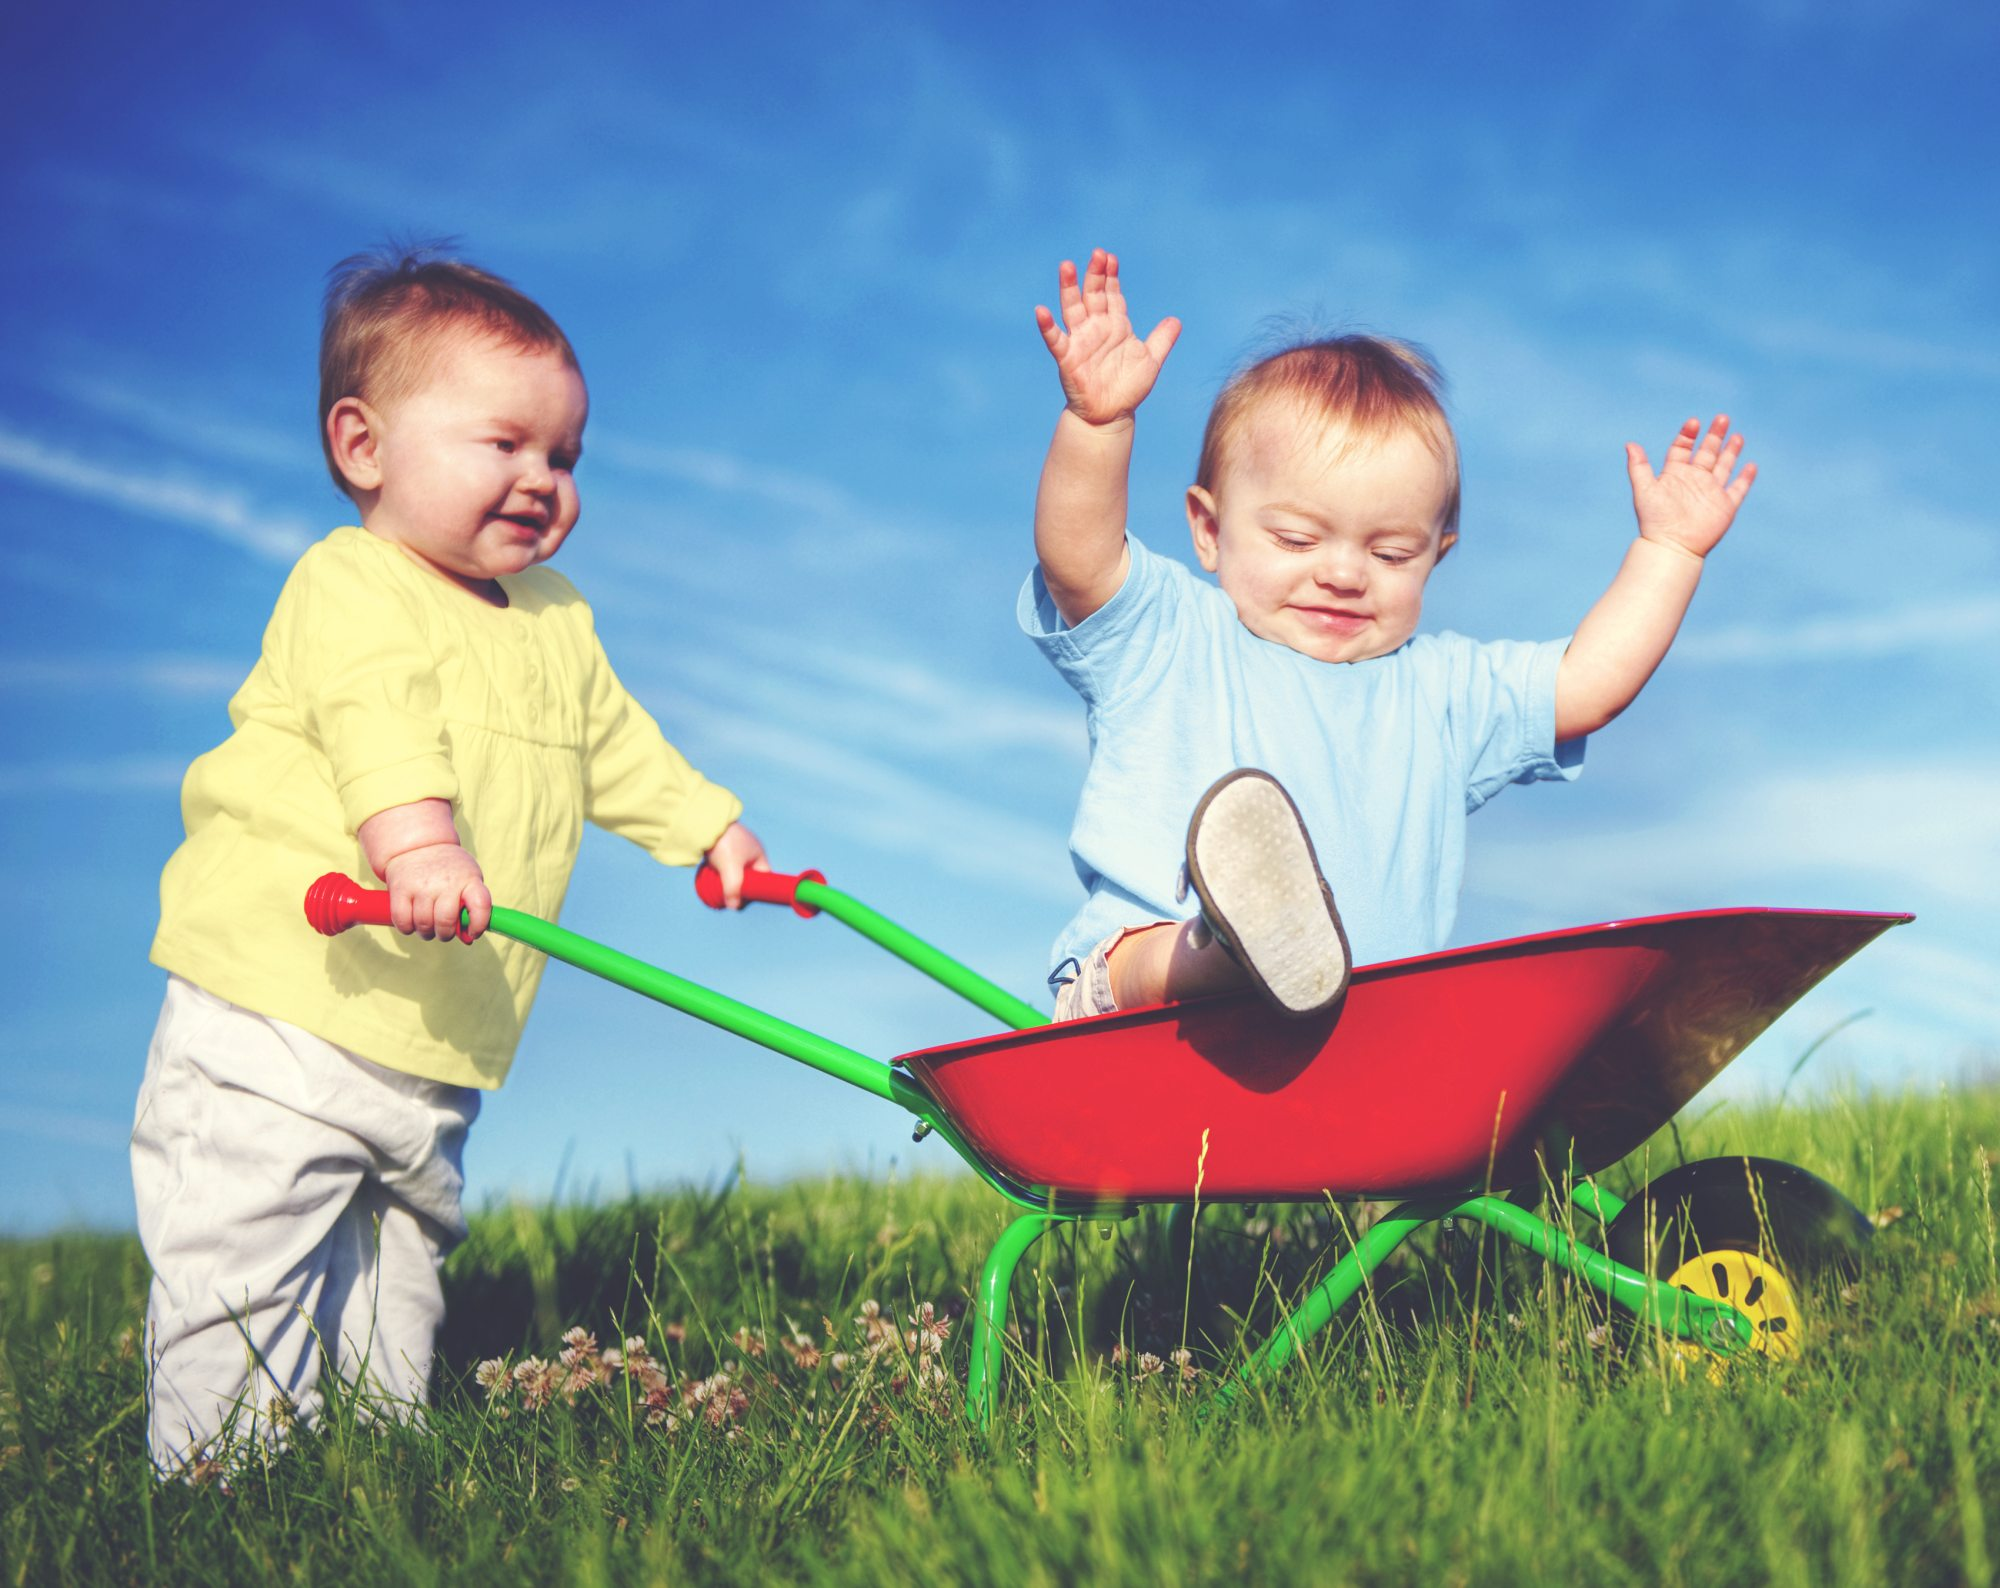 Two Toddlers Playing Together Outdoors Concept